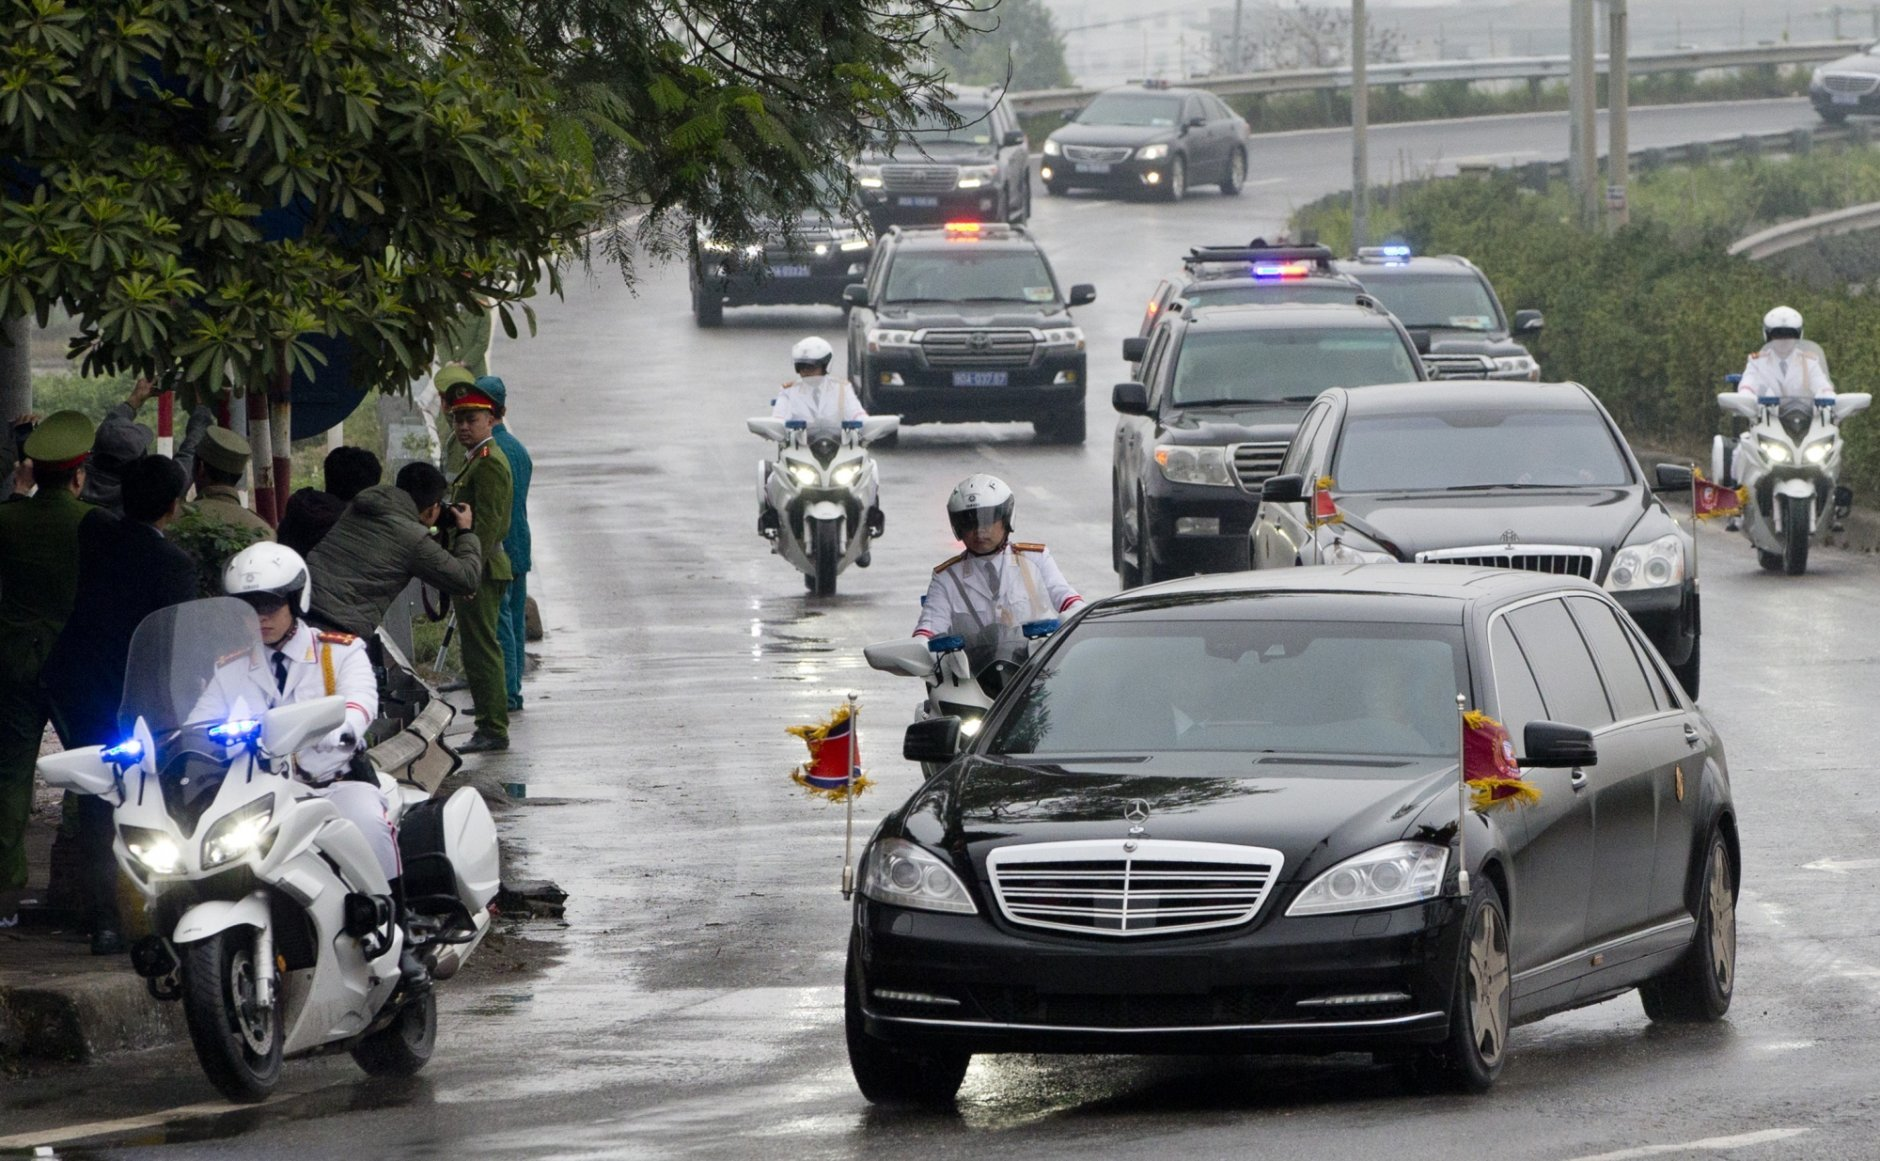 A motorcade carrying North Korean leader Kim Jong Un is driven to Hanoi, Vietnam, Tuesday, Feb. 26, 2019. Kim Jong Un has arrived in Vietnam for the North Korean leader's second summit with Donald Trump. (AP Photo/Gemunu Amarasinghe)